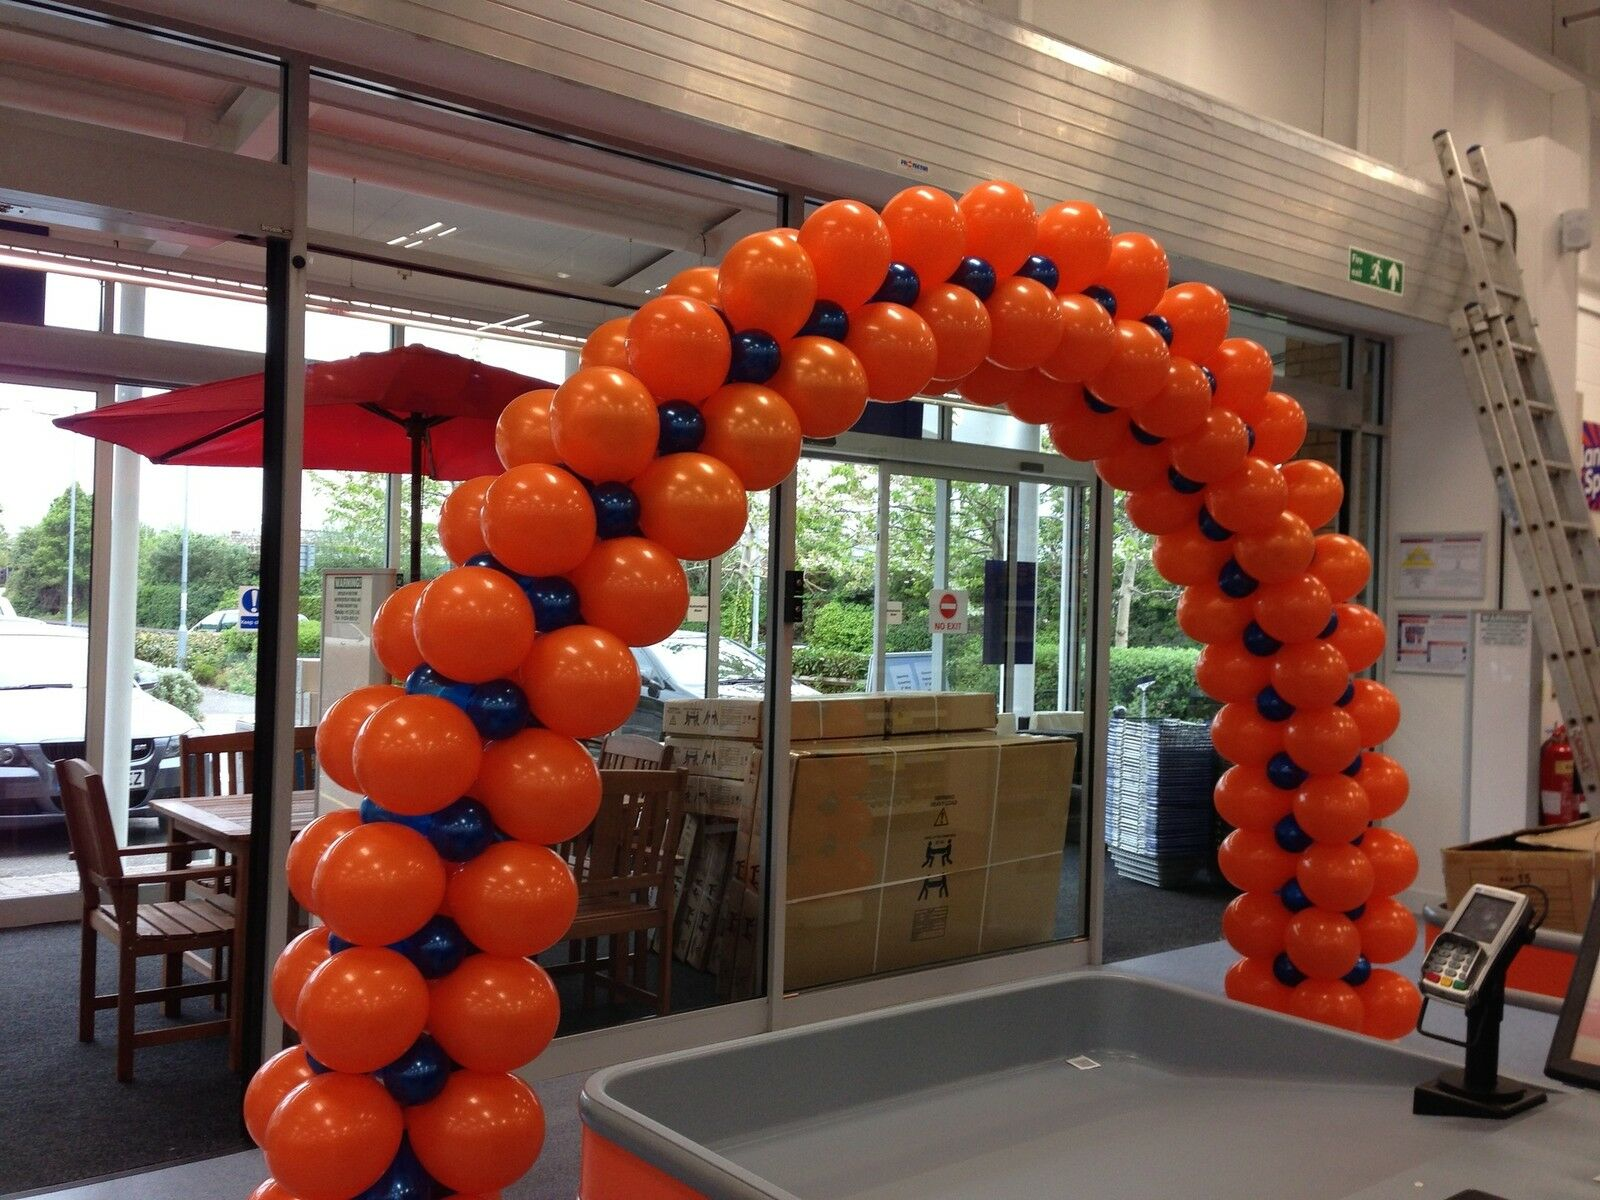 LARGE HEAVY DUTY Balloon Arch Frame Diy Kit Hire Or Buy Option No ...